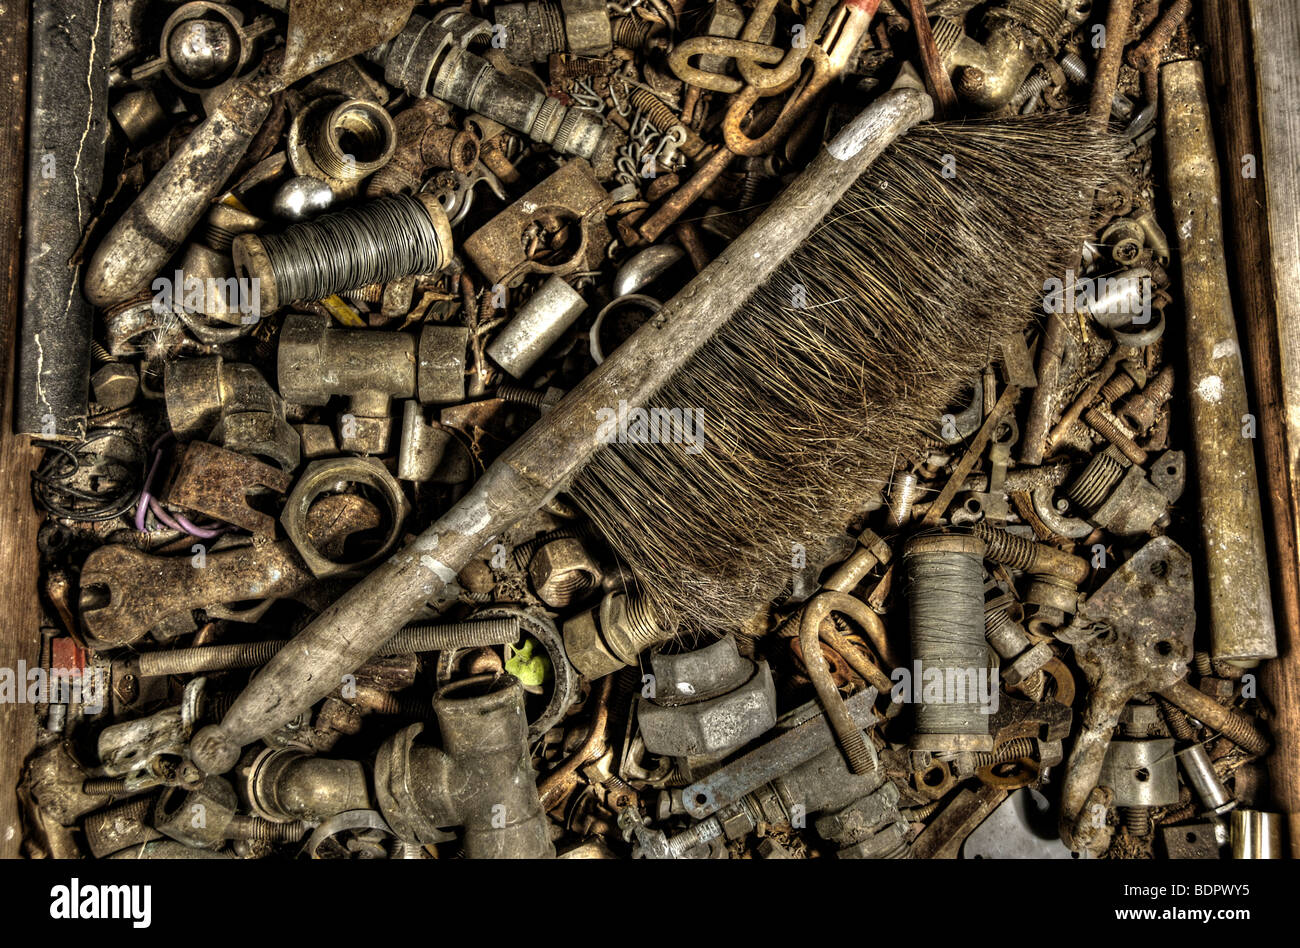 An old hand brush in a box of old nuts and bolts Stock Photo